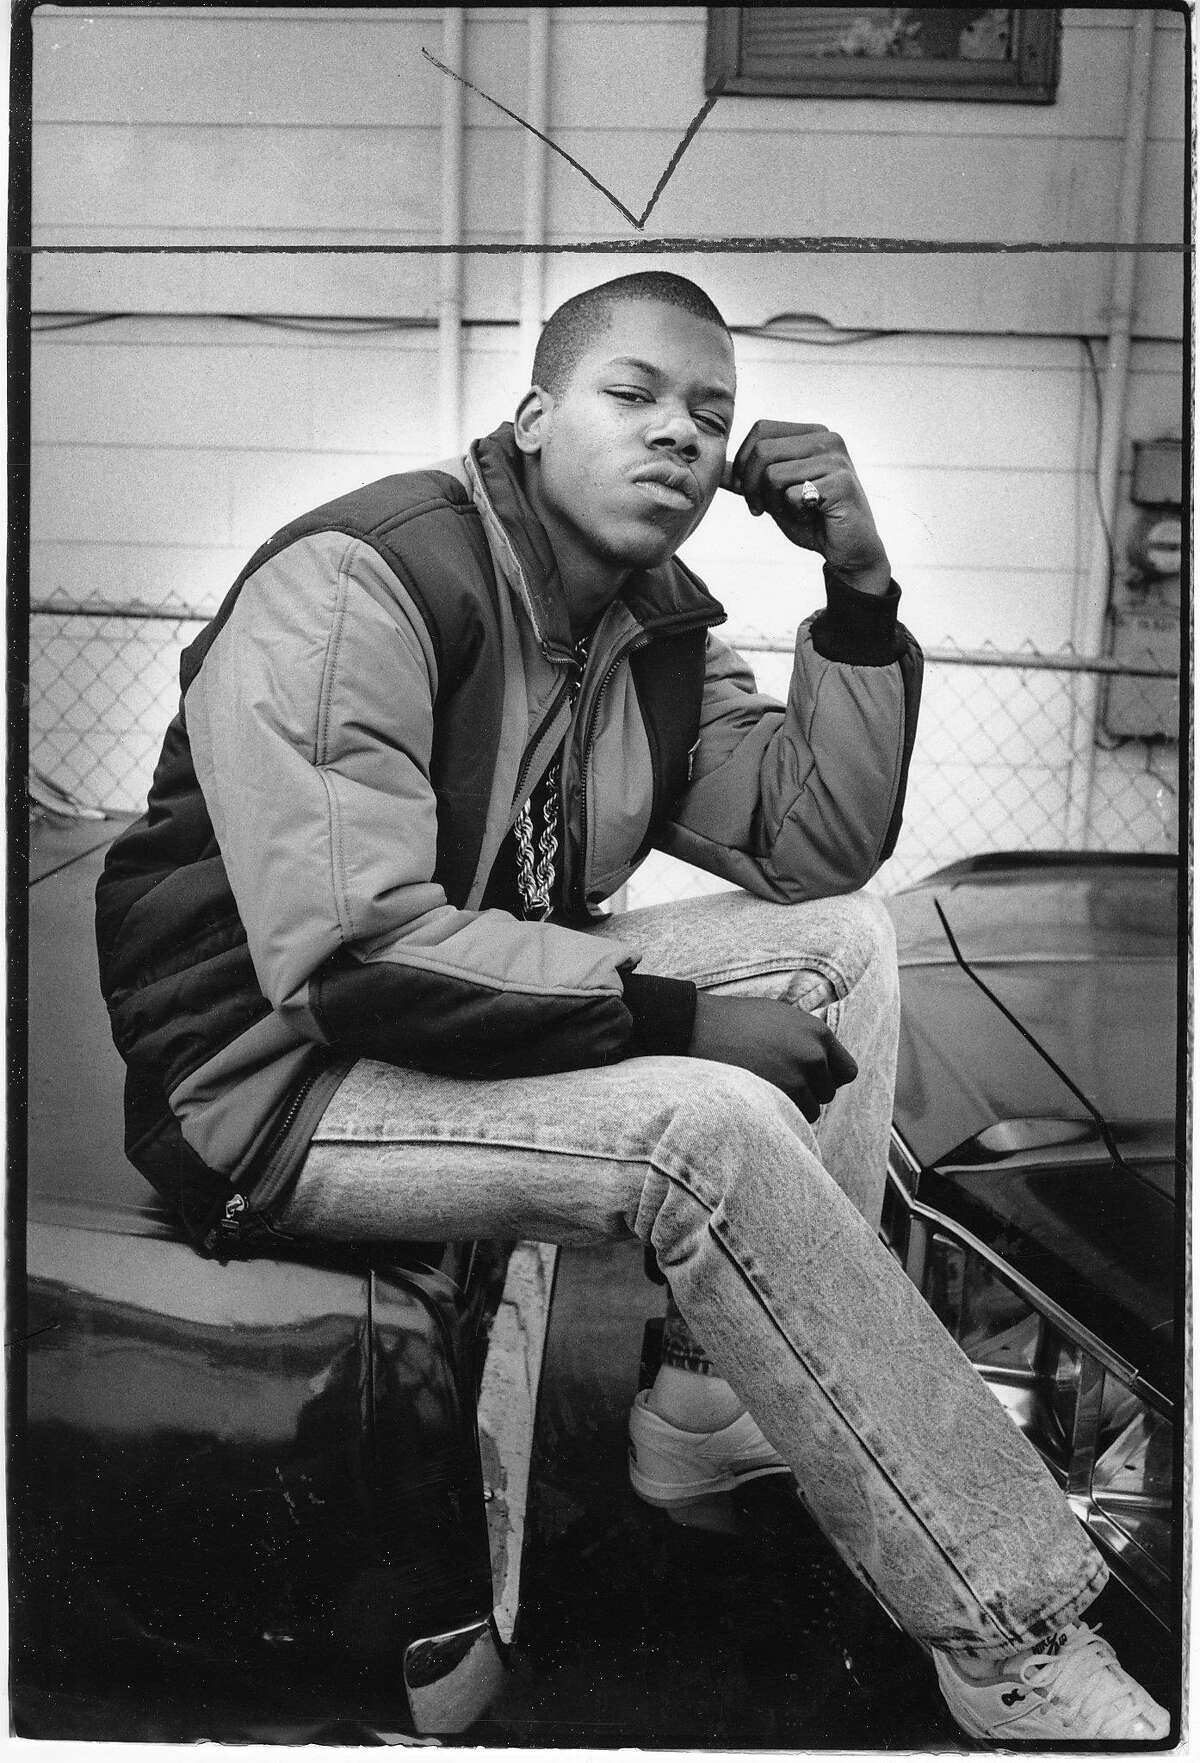 """In the opening Oakland scene, rapper Too Short's """"In the Trunk"""" is playing. Todd Anthony Shaw, aka Too Short, was born in South Central, L.A., but later moved to Oakland where he was the drummer in the band at Fremont High School."""